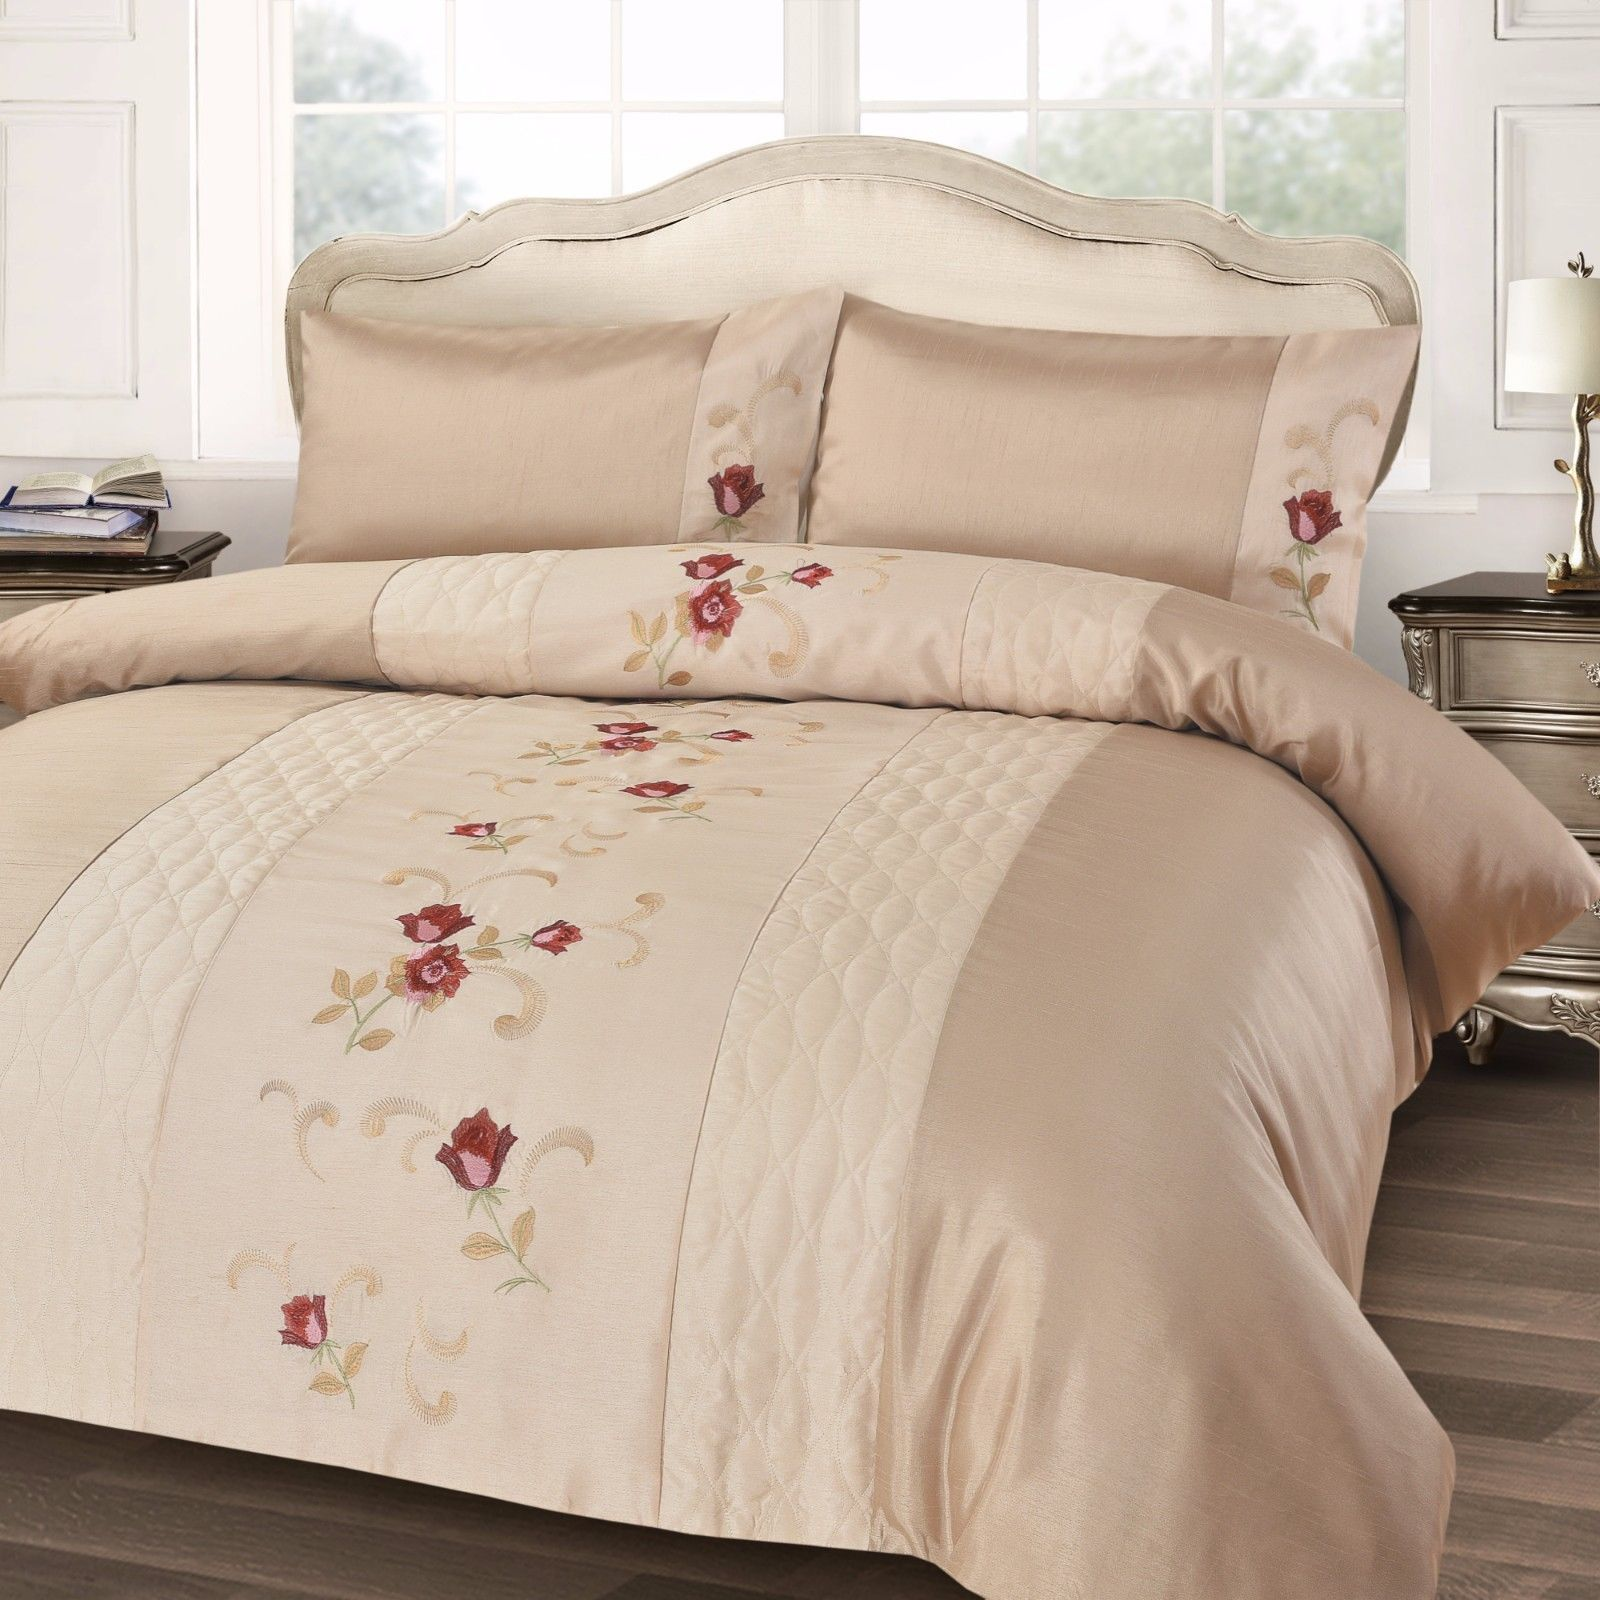 CREAM WINE STYLISH FLORAL EMBROIDERED DUVET COVER LUXURY BEAUTIFUL BEDDING